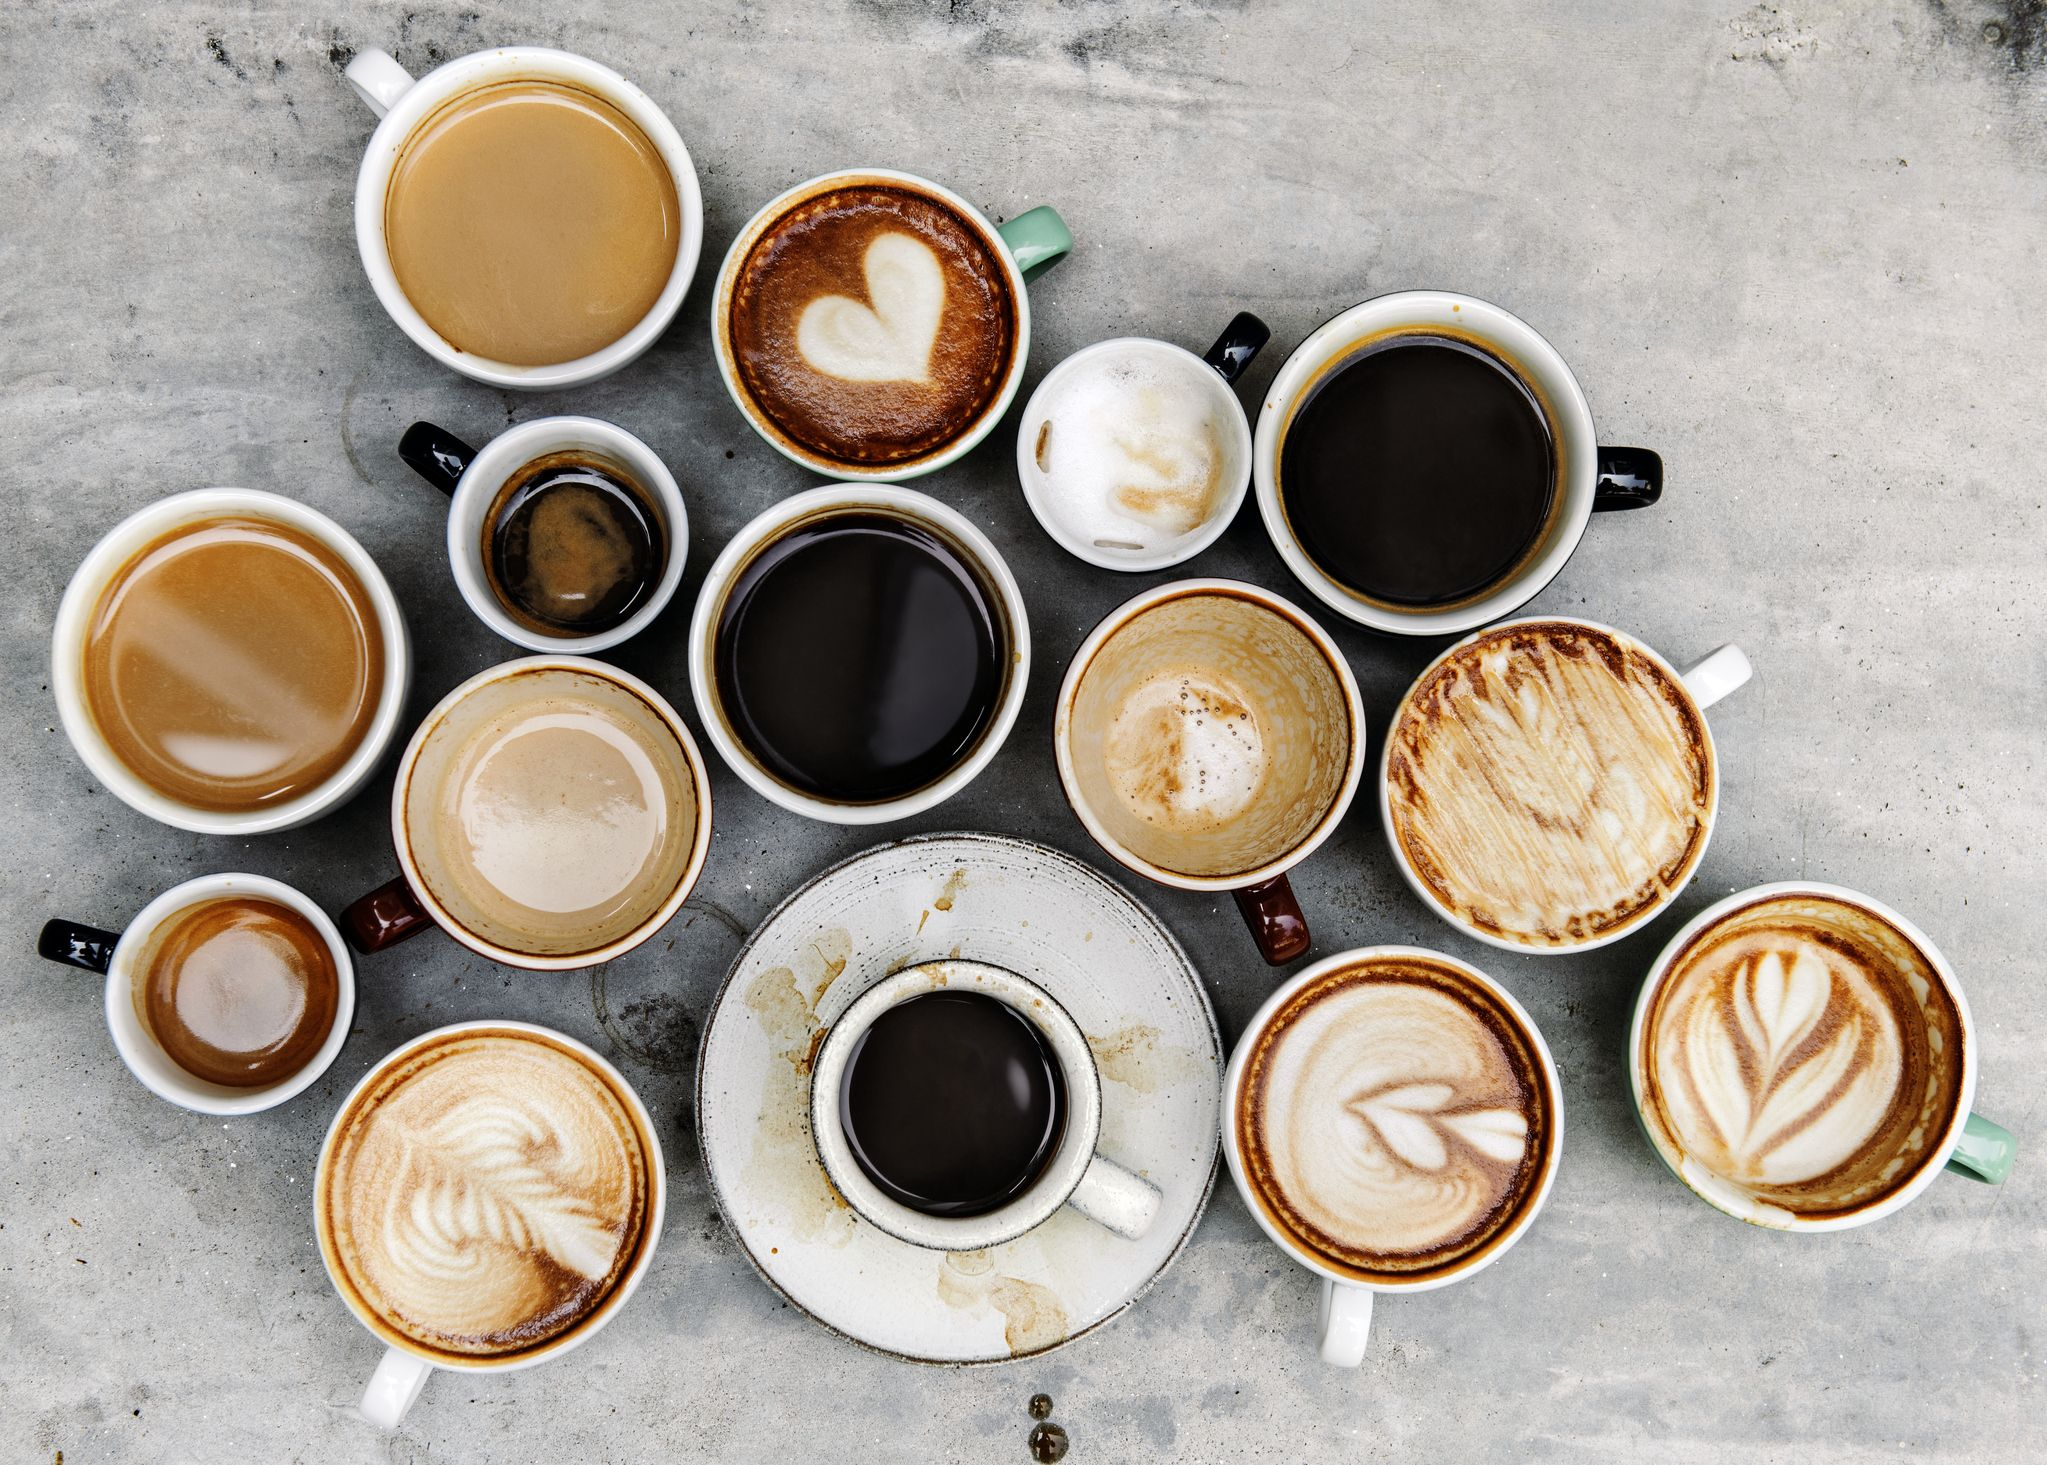 What Kind Of Coffee Drinker Are You?